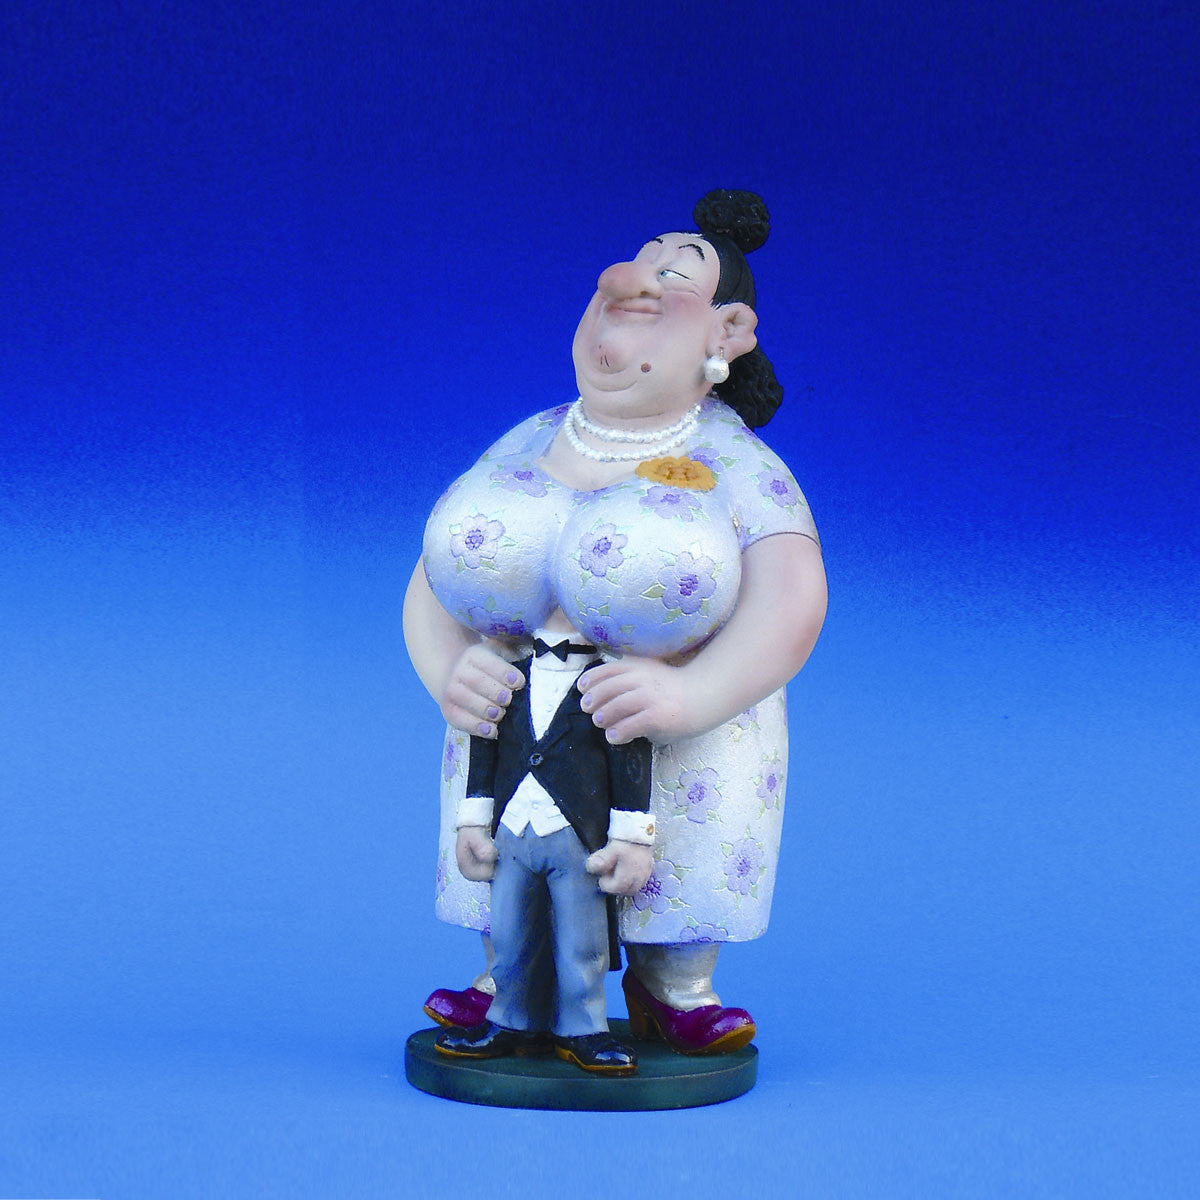 Souriez Figurine